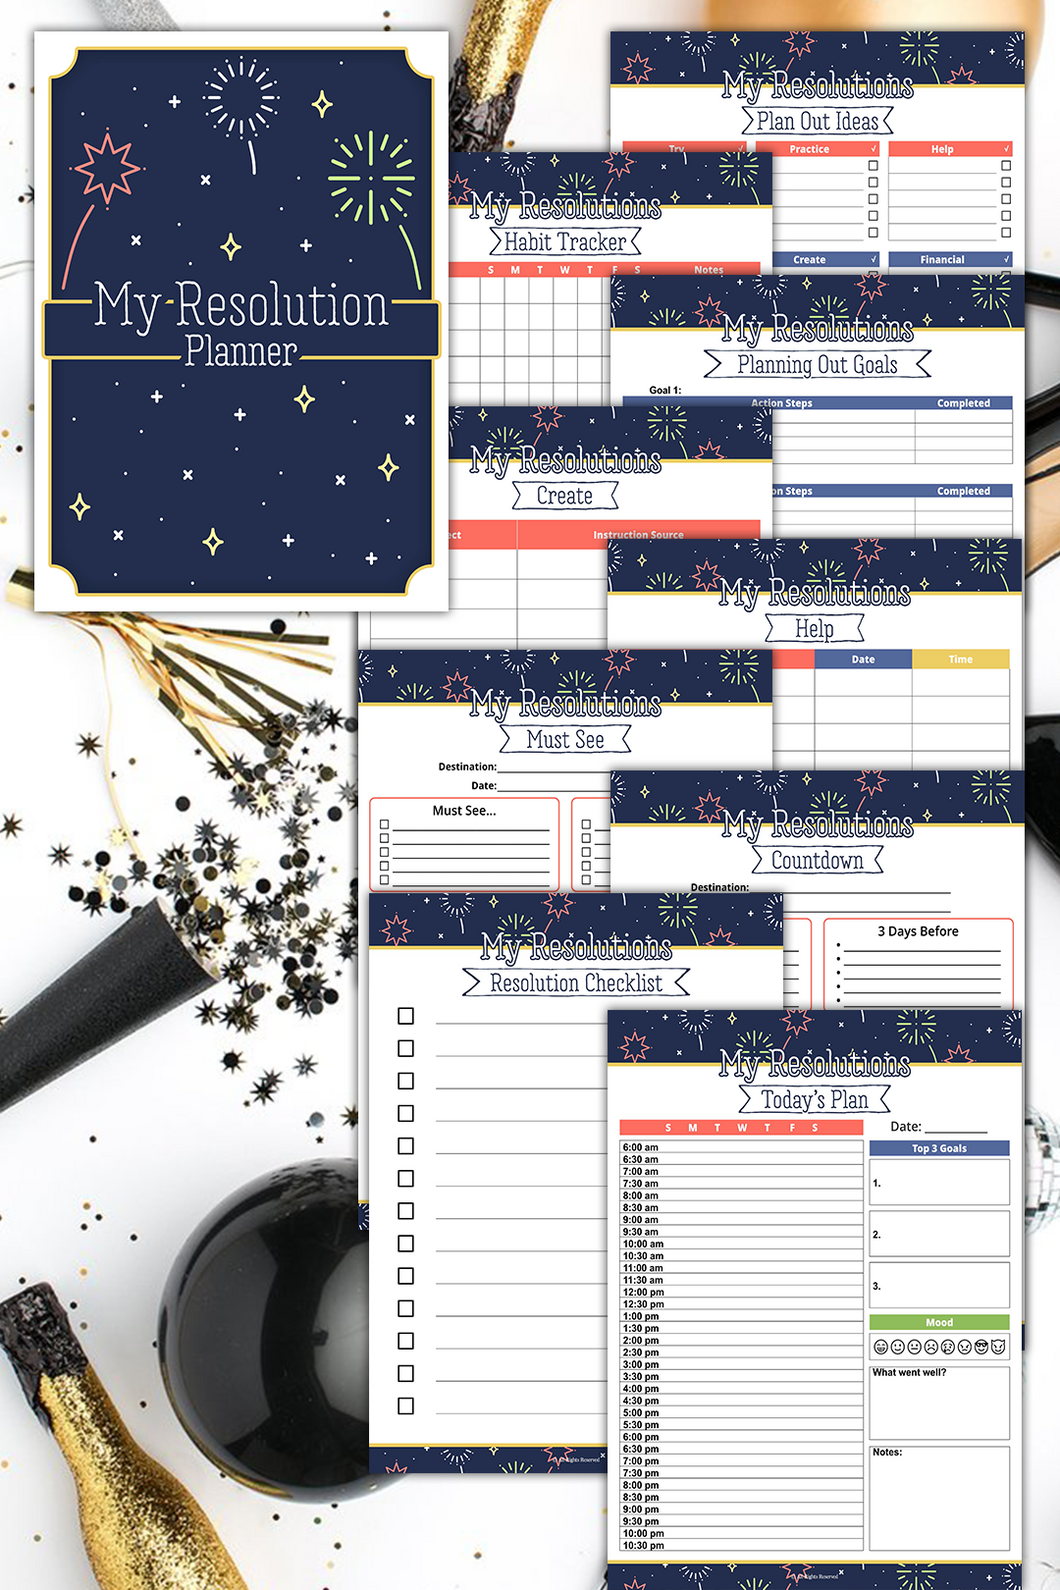 My Resolution Planner ( 29 Pages )